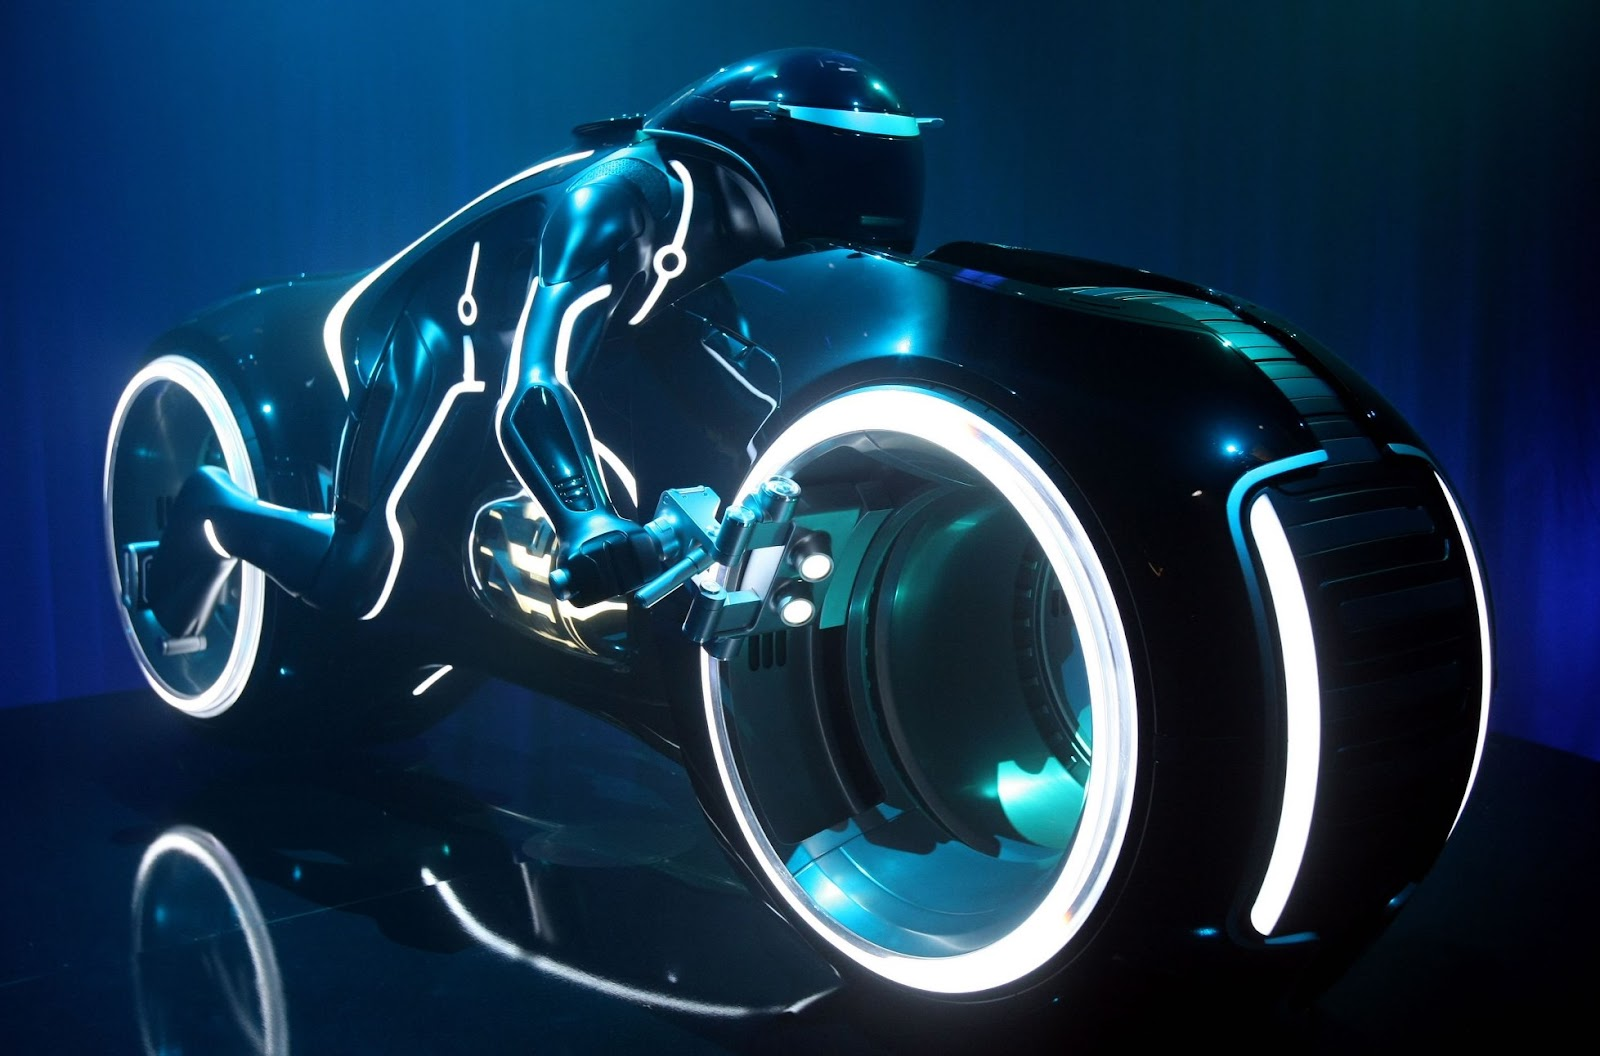 Tron Lightcycle electric motorcycle